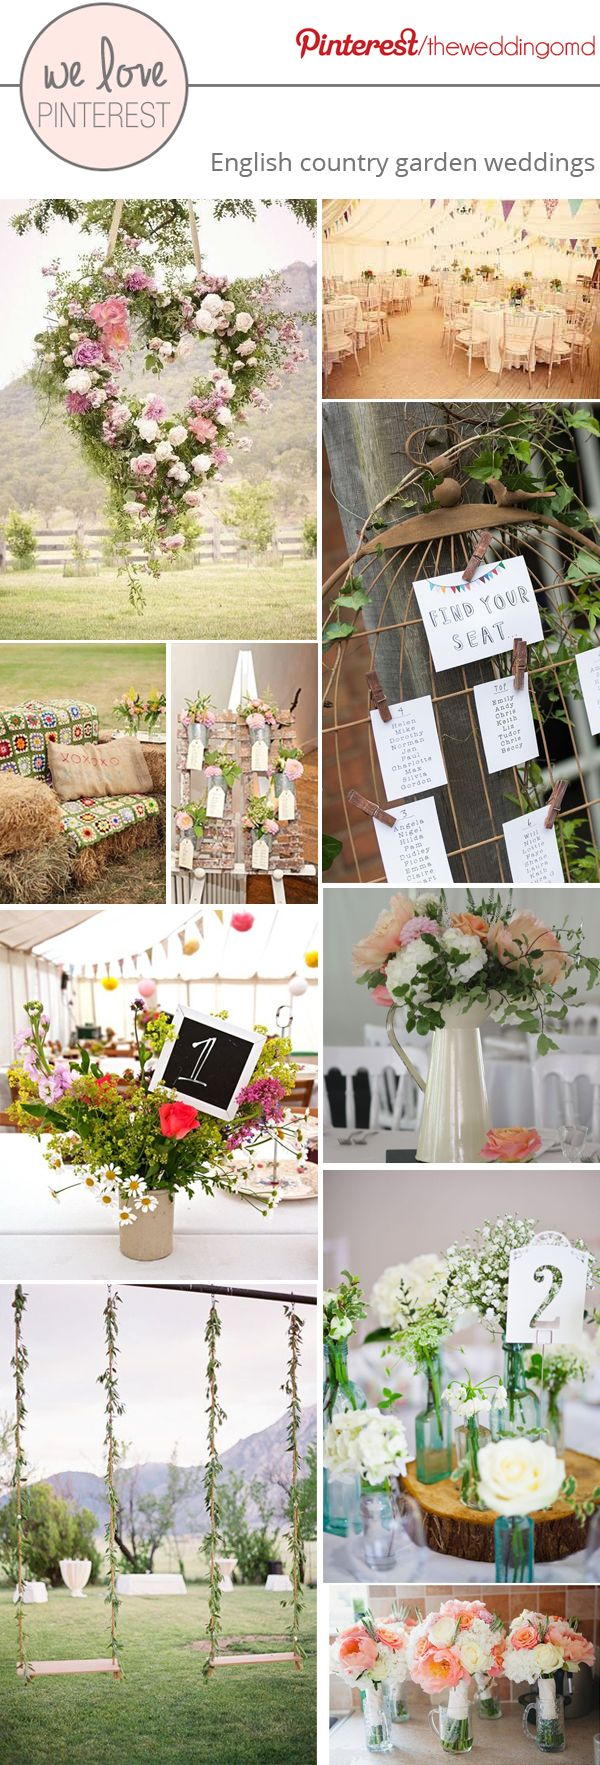 English Country Garden Wedding Decorations and Ideas...like the grapevine heart!